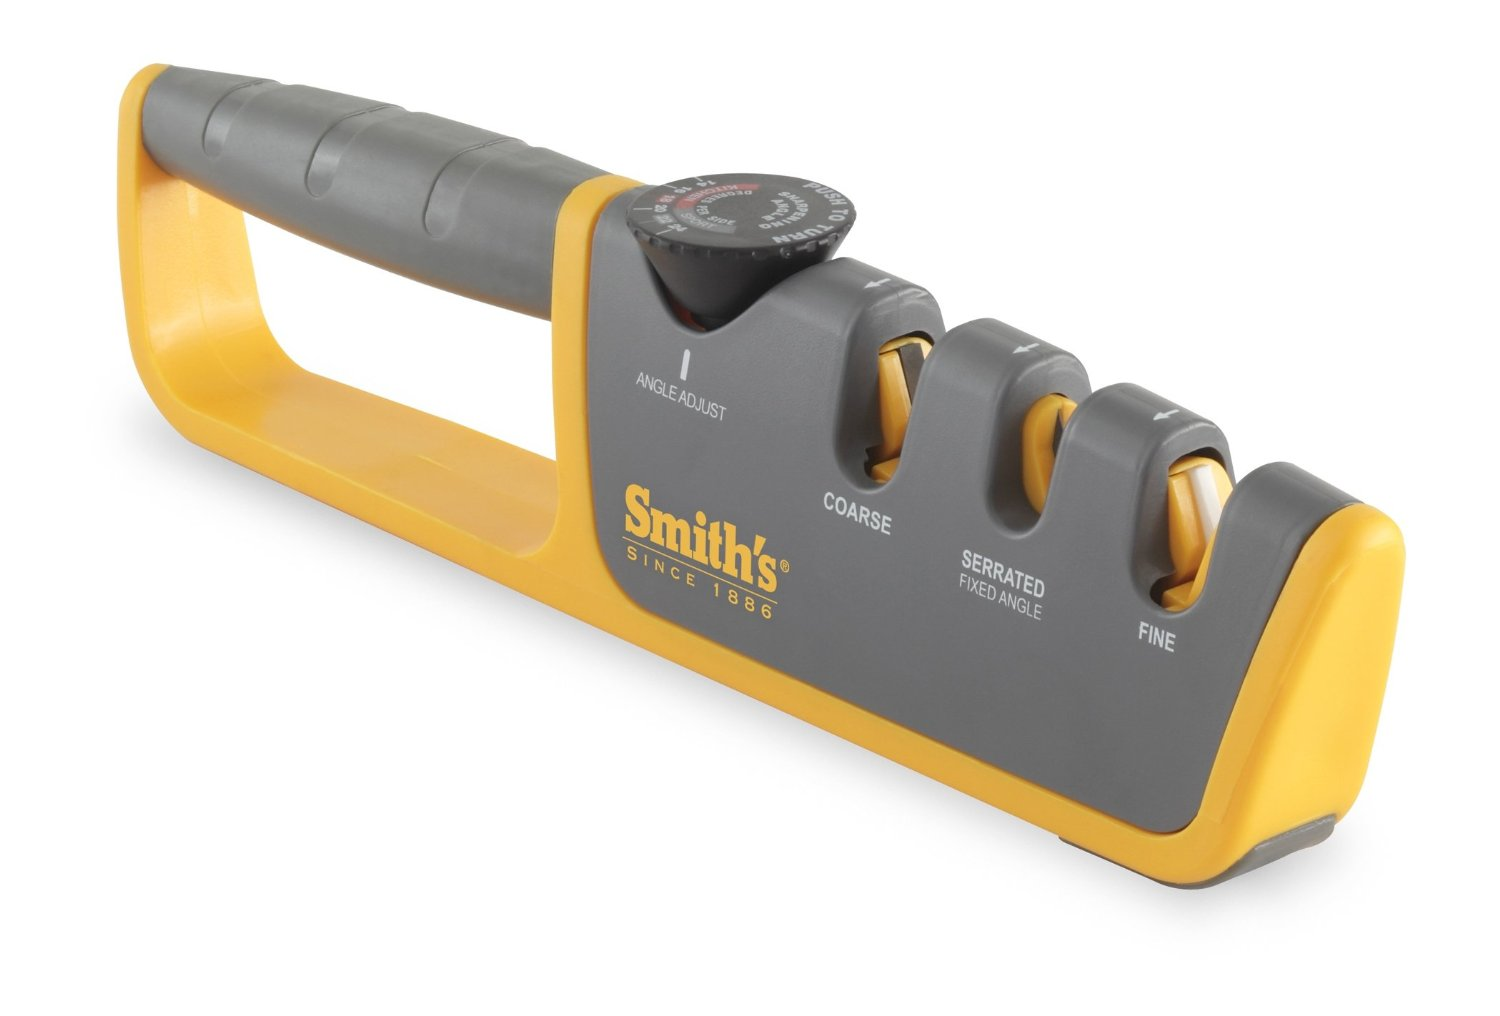 Smith's Pull-Thru Knife Sharpener